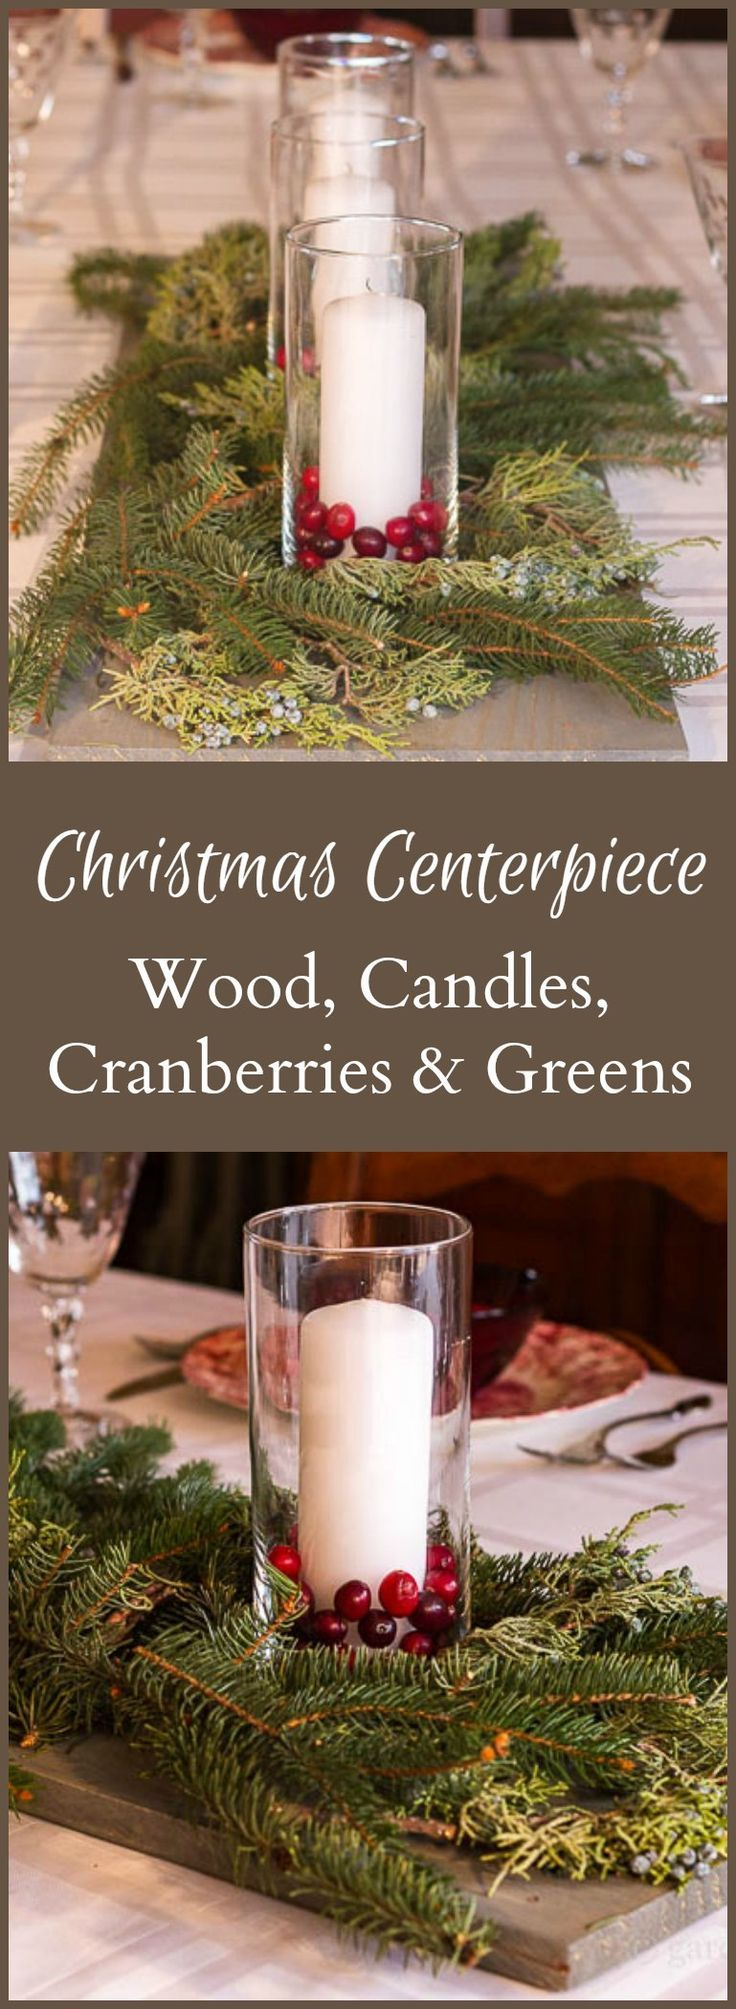 How to make christmas centerpieces with ice - This Simple Wood Candle Cranberry Evergreen Centerpiece Is So Easy To Make And